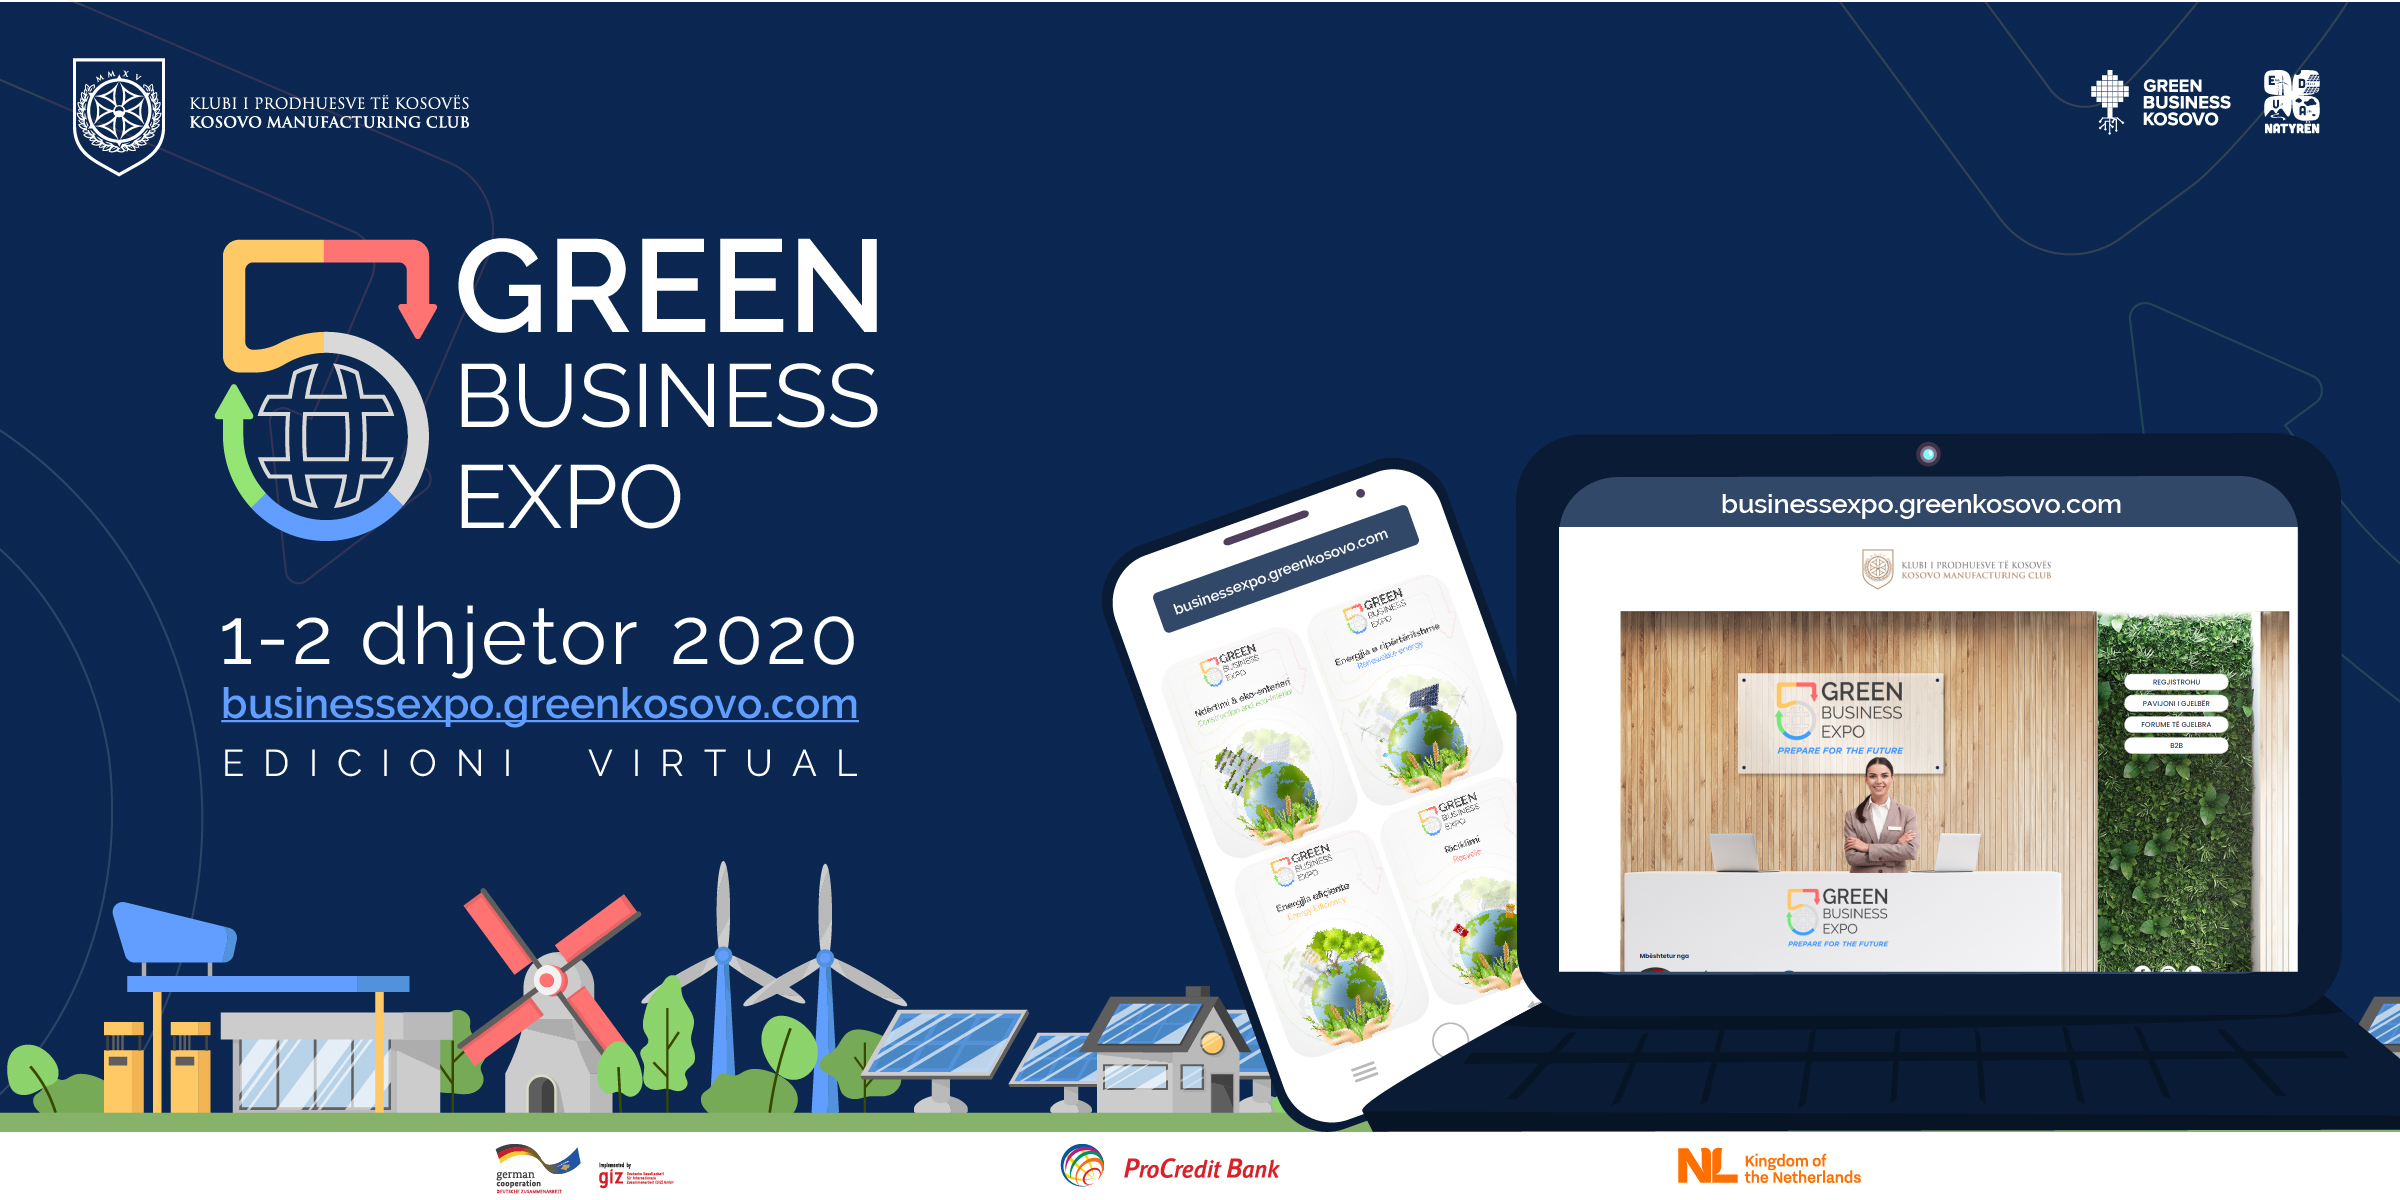 Green Business Expo 1